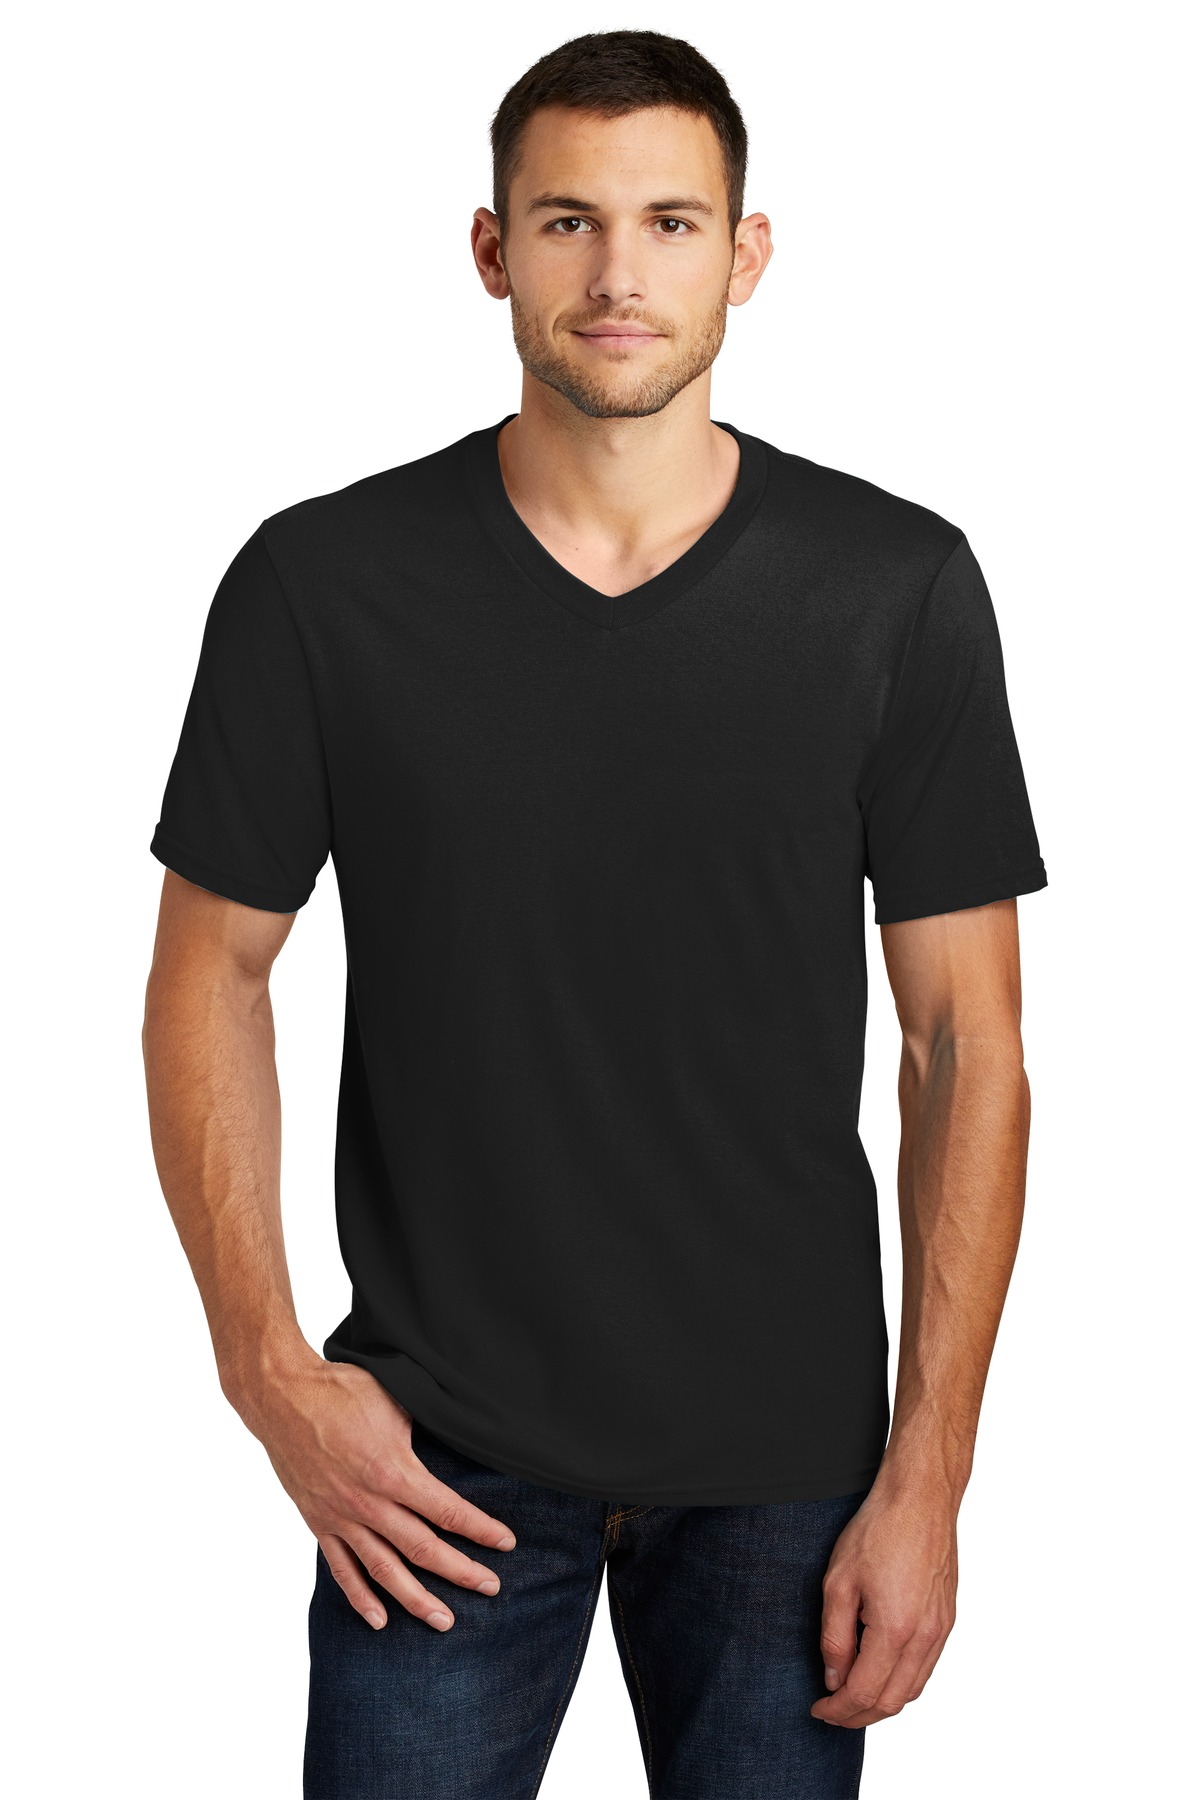 Shop our collection of iconic men's t-shirts and tank tops at American Apparel. Free shipping and returns on eligible orders. Shop online.